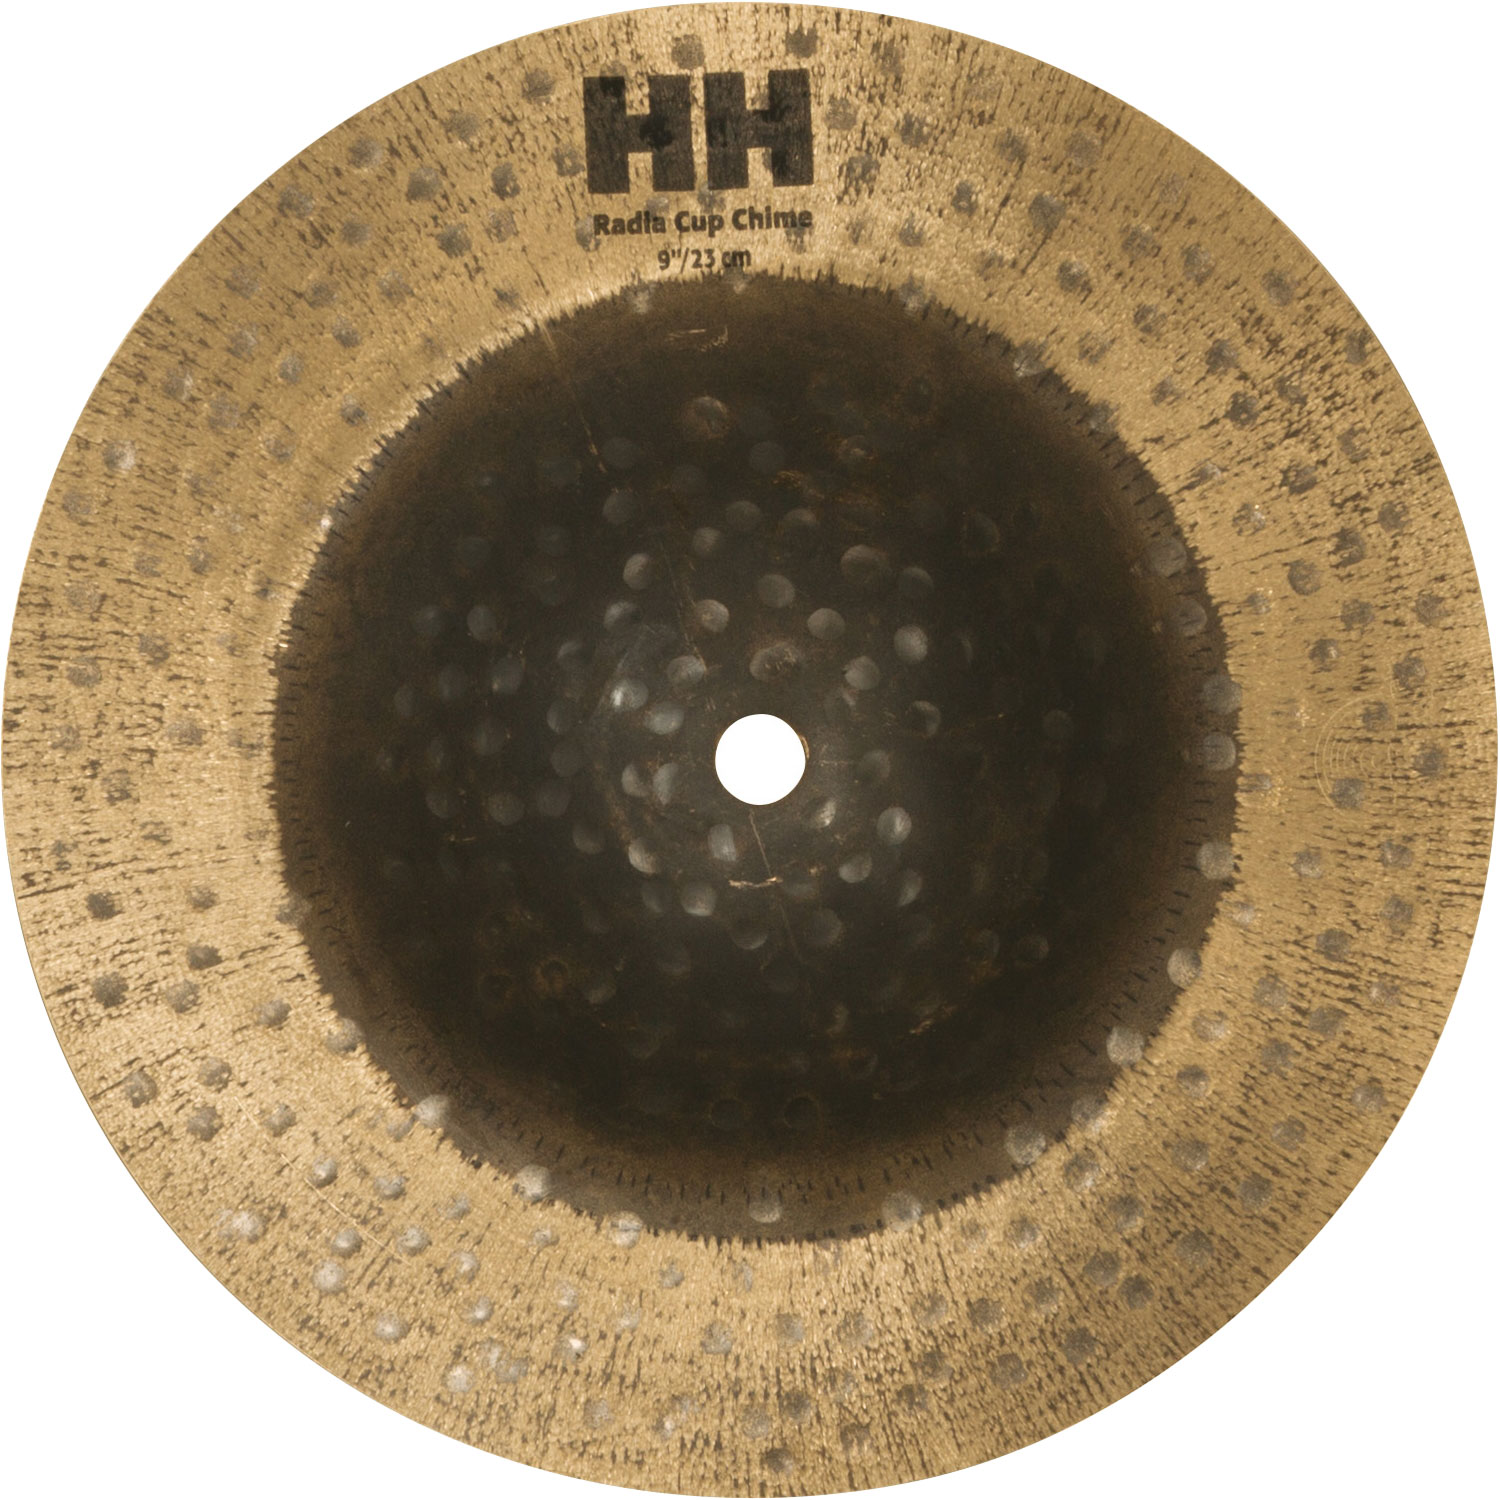 "Sabian 9"" Radia Cup Chime with Natural Finish"